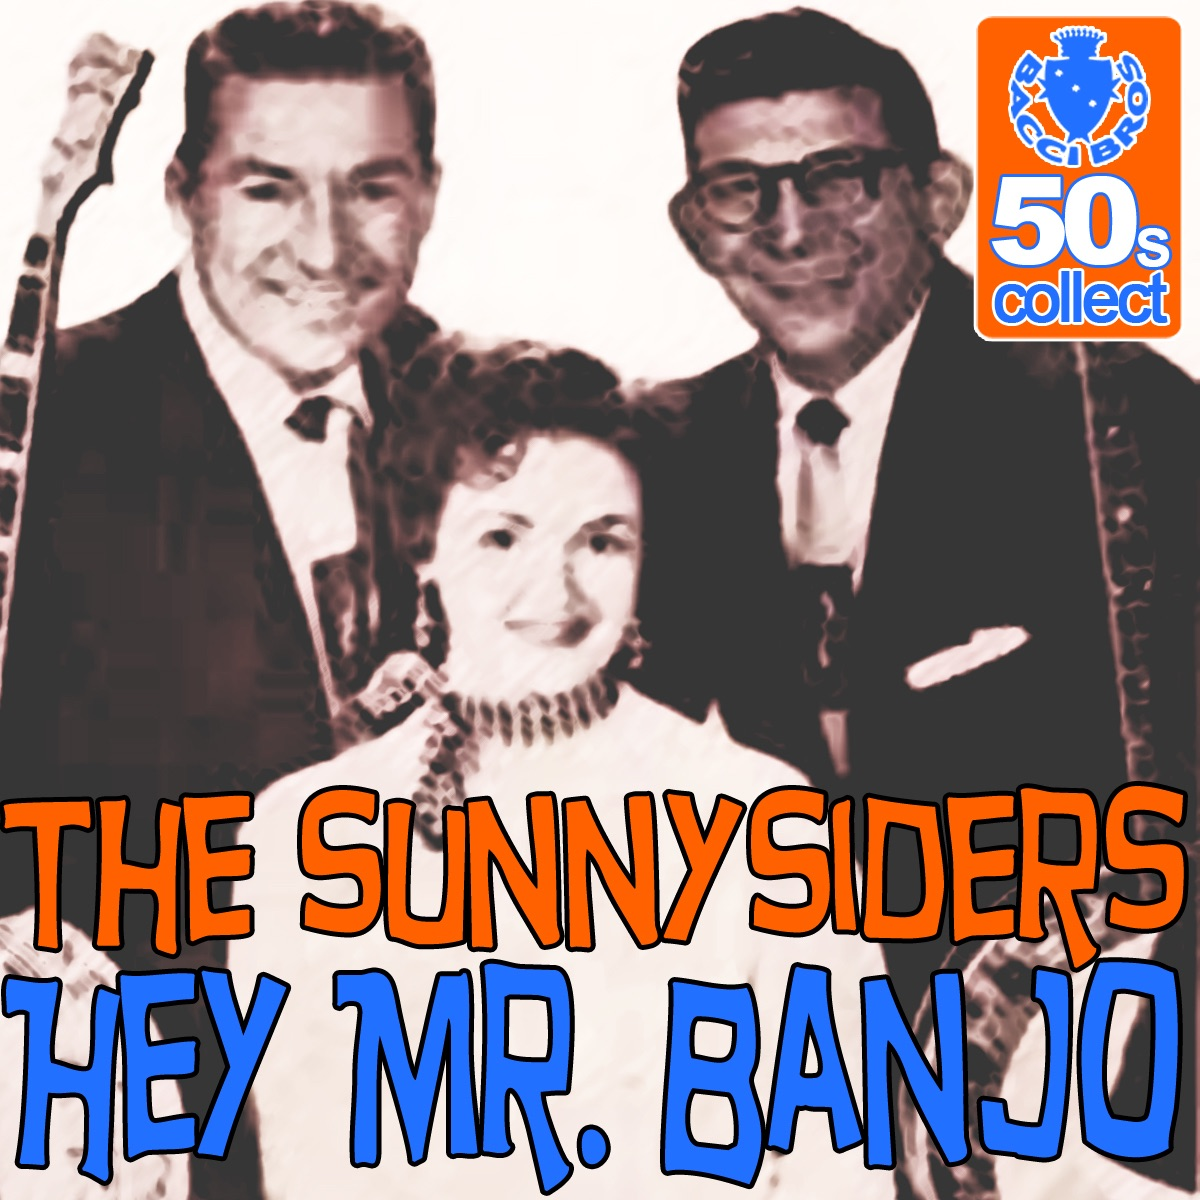 Hey Mr Banjo Remastered - Single The Sunny Siders CD cover